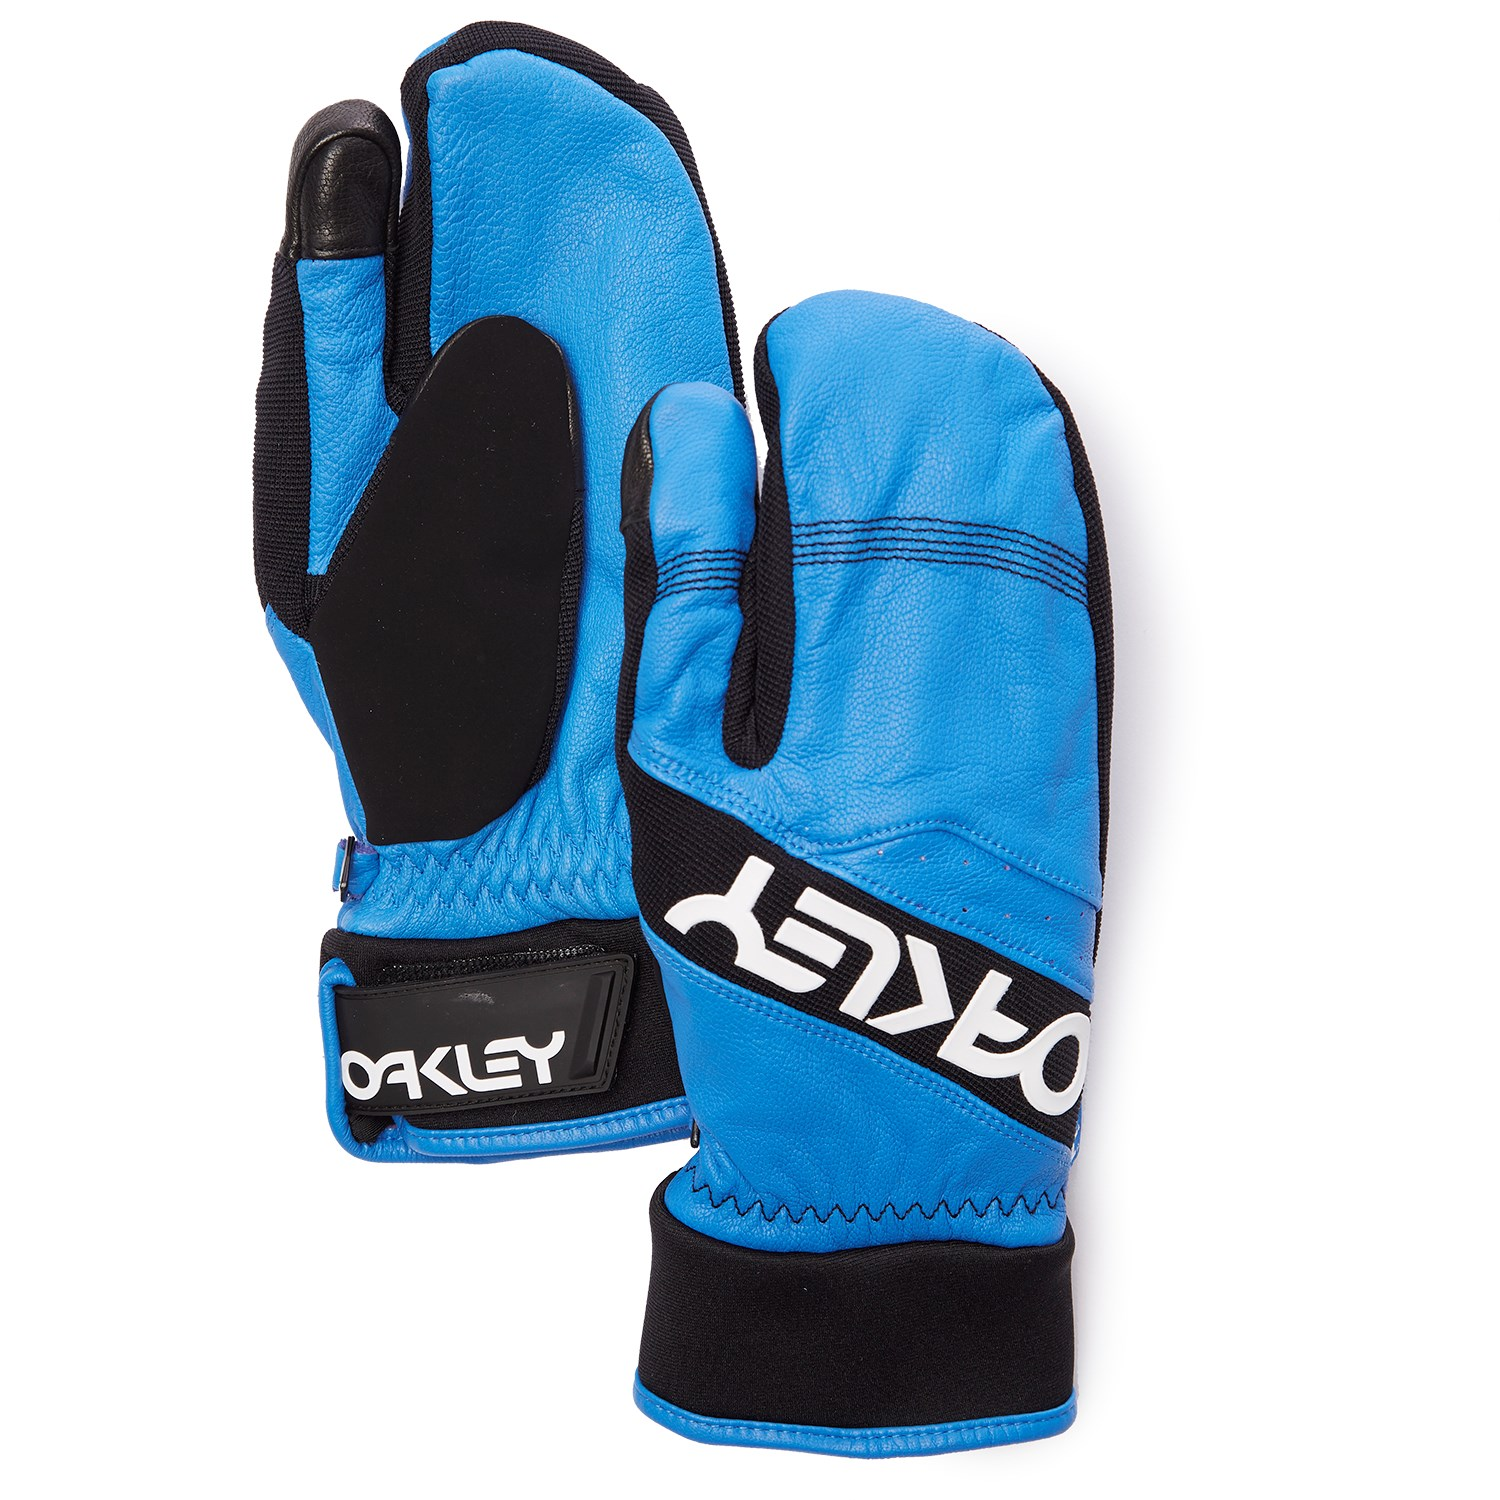 6db01fbaed Oakley Factory Winter 2 Trigger Mittens